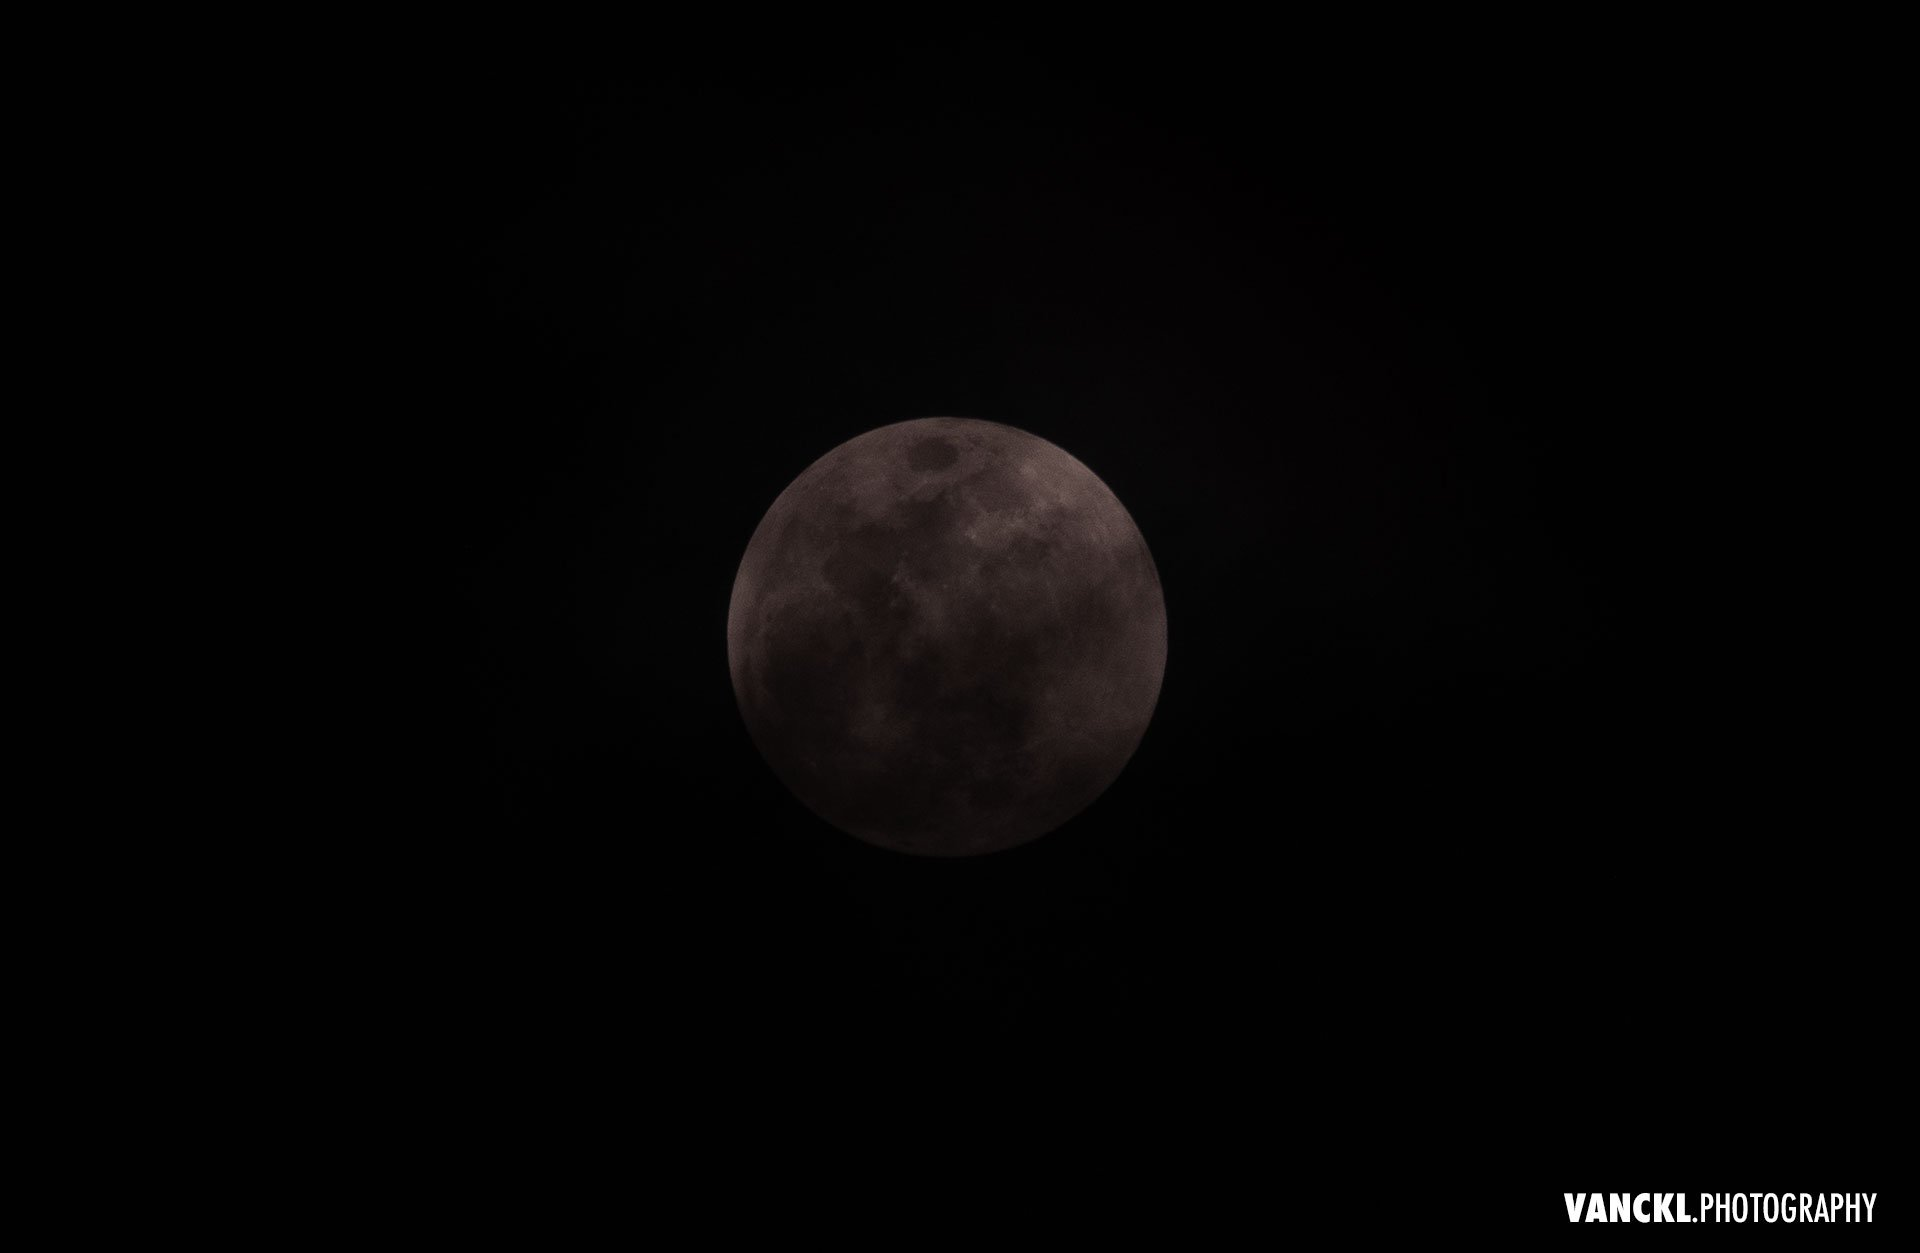 Strawberry Moon - Penumbral Lunar Eclipse June 2020